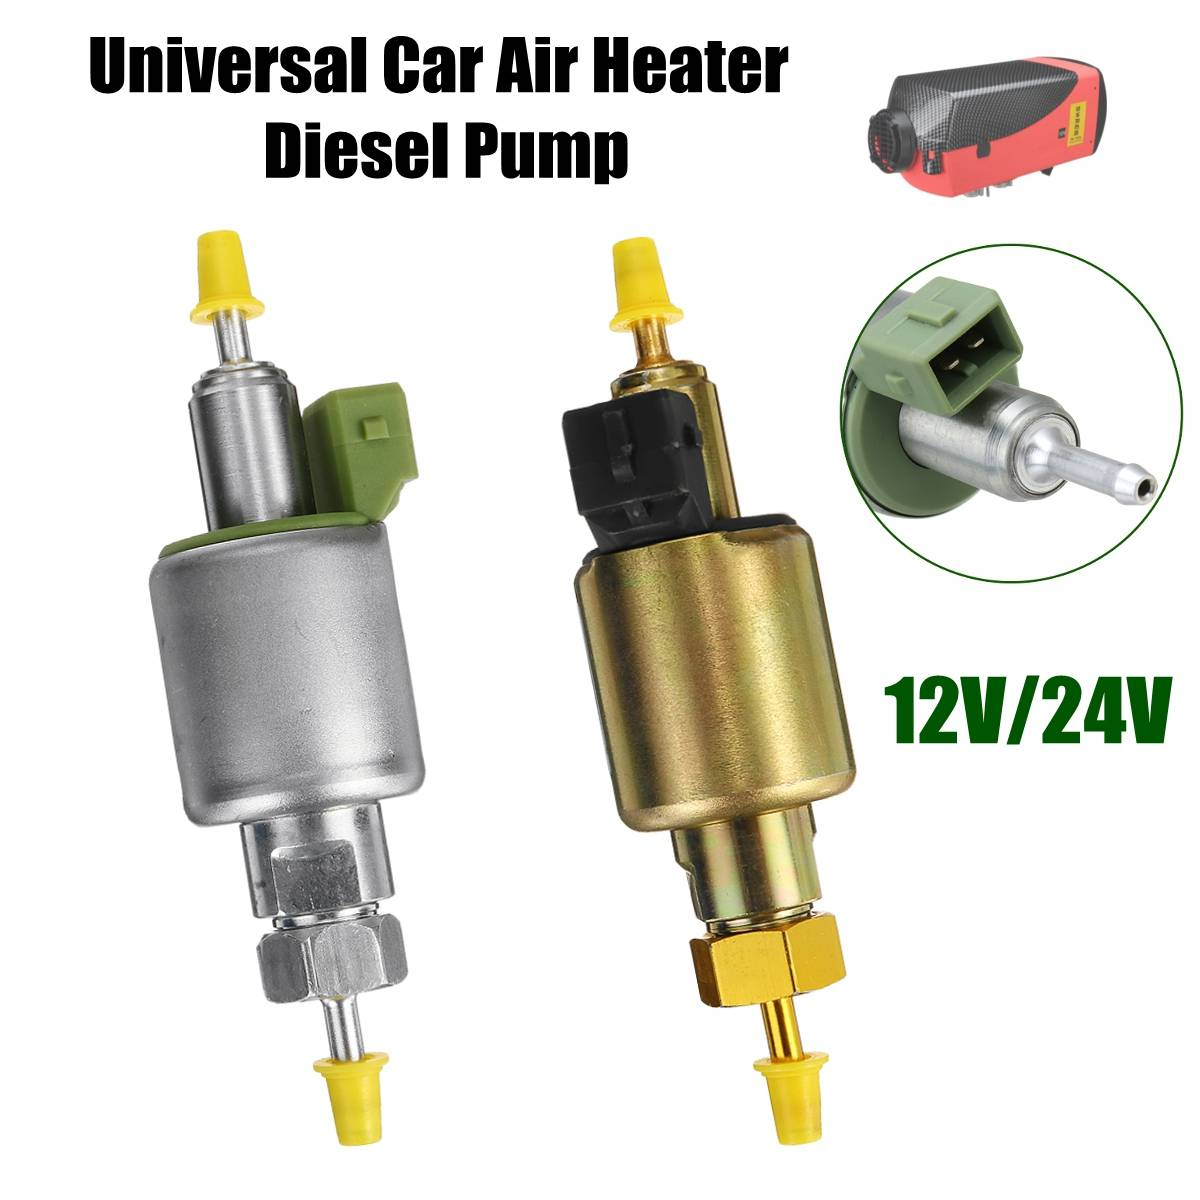 CAR AIR FUEL PUMP AUXILIARY HEATER FIT REPLACEMENT FOR MORE EBERSPACHER WEBASTO